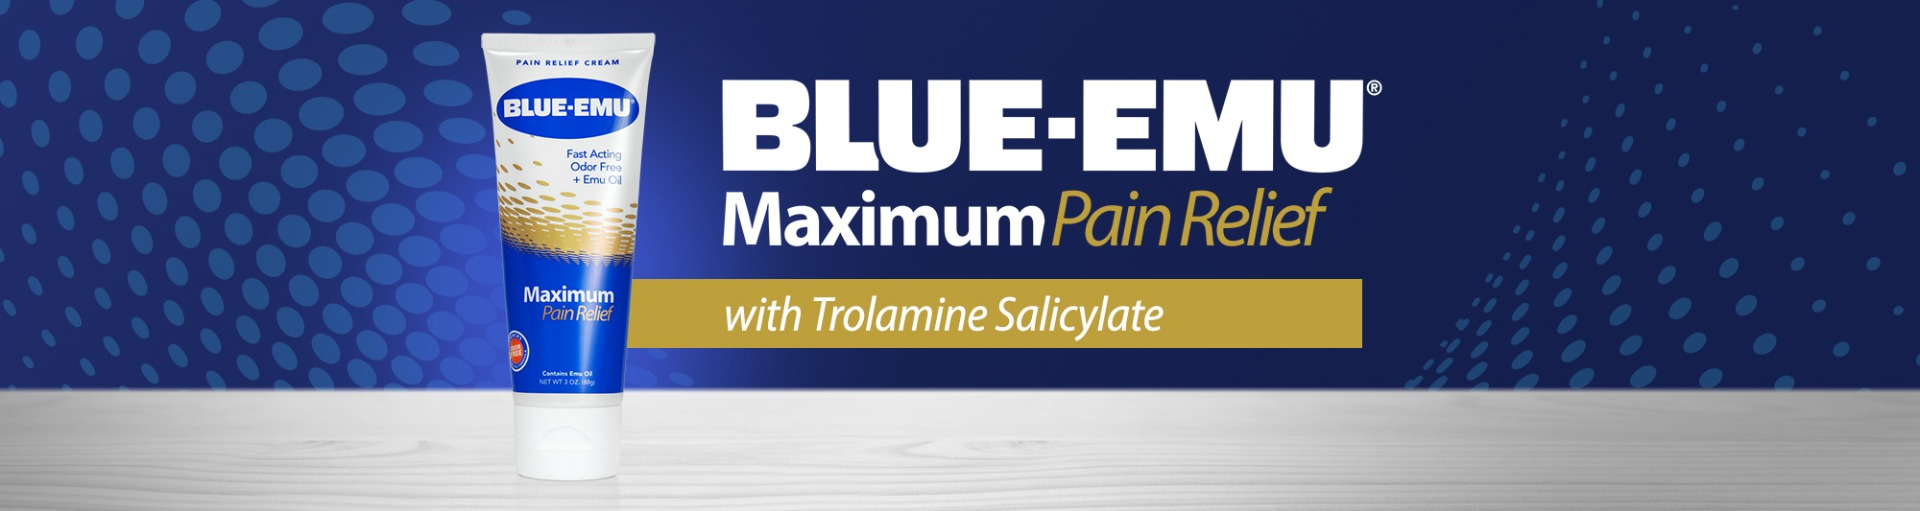 Image of Blue-Emu Maximum Pain Relief Cream tube on a grey wood surface with a blue dotted background and the words Blue-Emu Maximum Pain Relief with Trolamine Salicylate